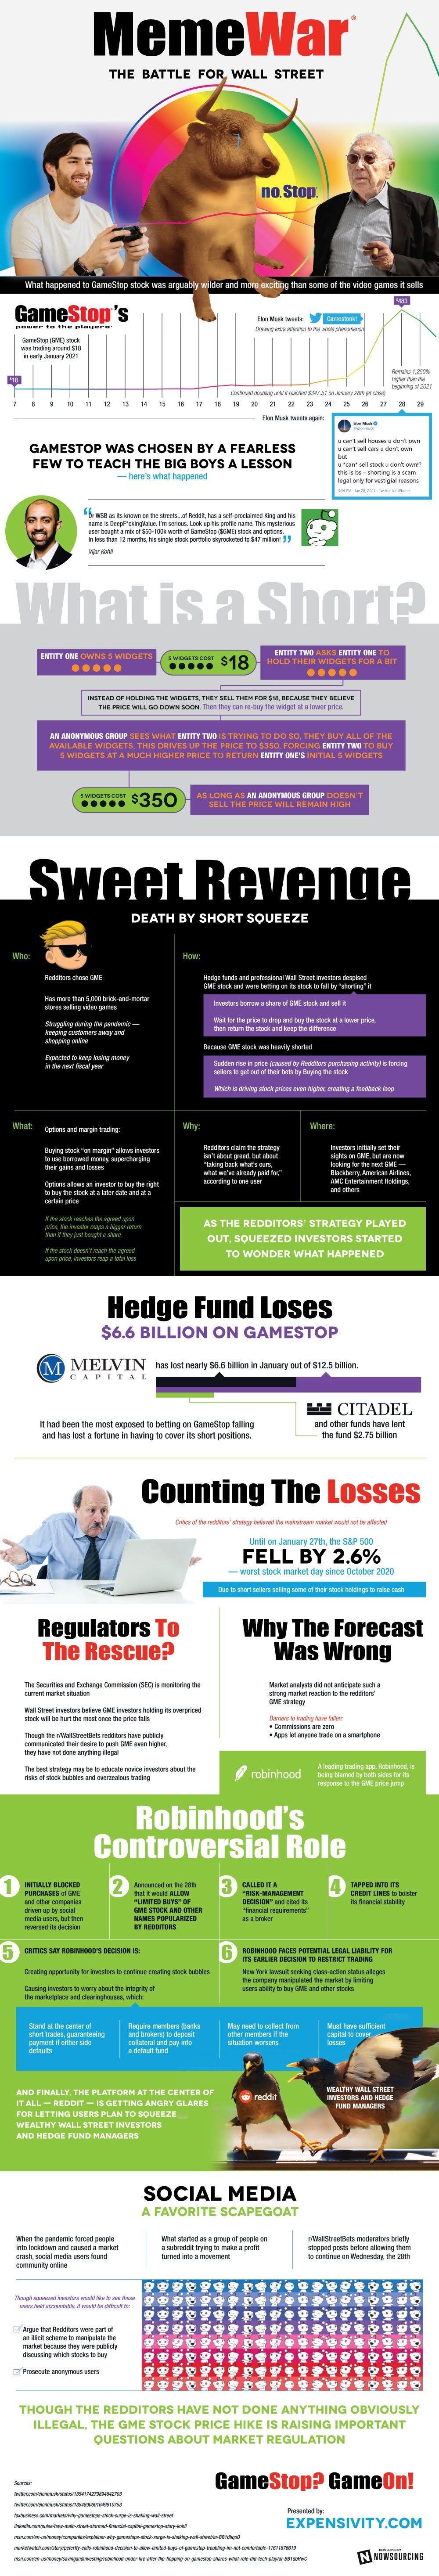 When Reddit Took Over the Stock Market #Infographic